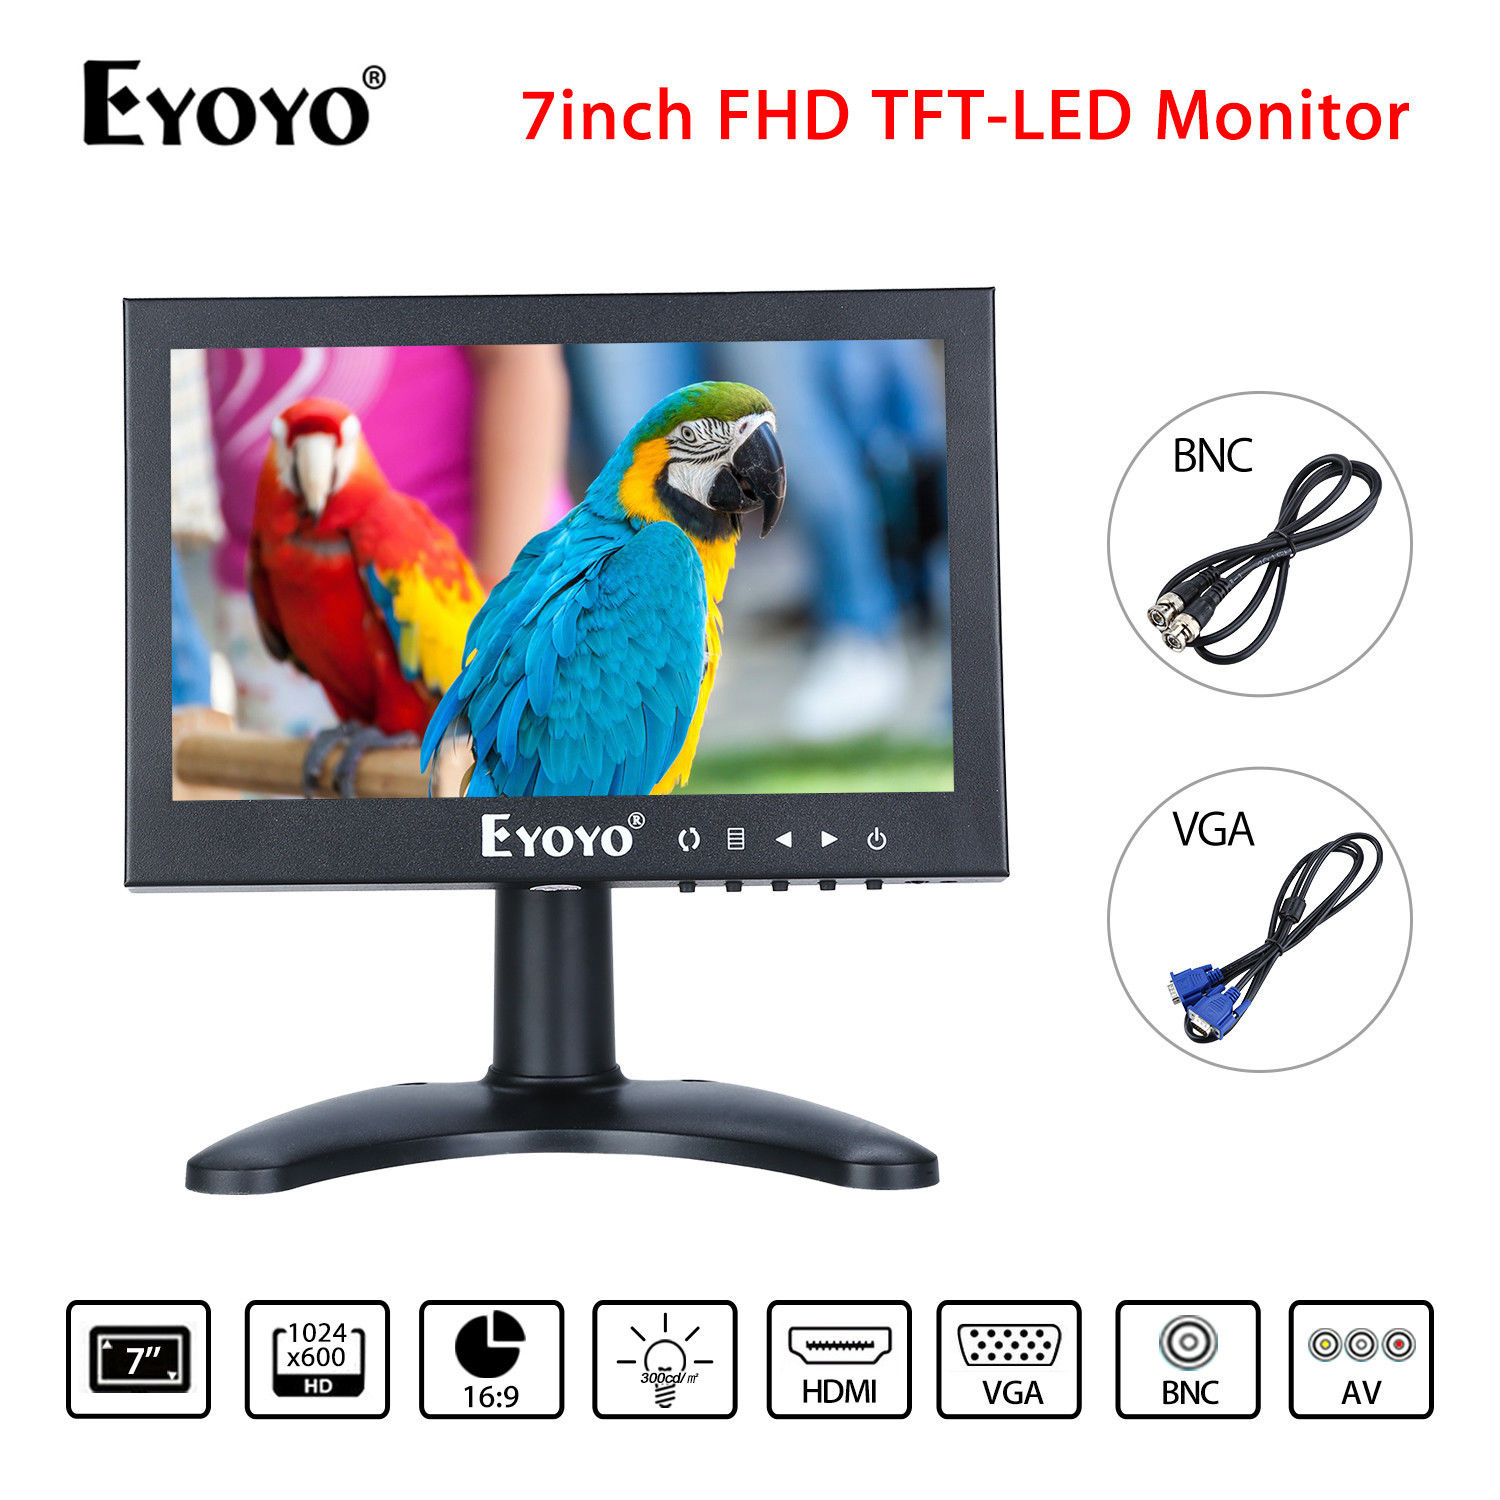 EYOYO 7'' FHD TFT LCD Screen 75degree HDMI BNC VGA AV Video Monitor For CCTV PC DVD DVR Security Camera TV aputure digital 7inch lcd field video monitor v screen vs 1 finehd field monitor accepts hdmi av for dslr